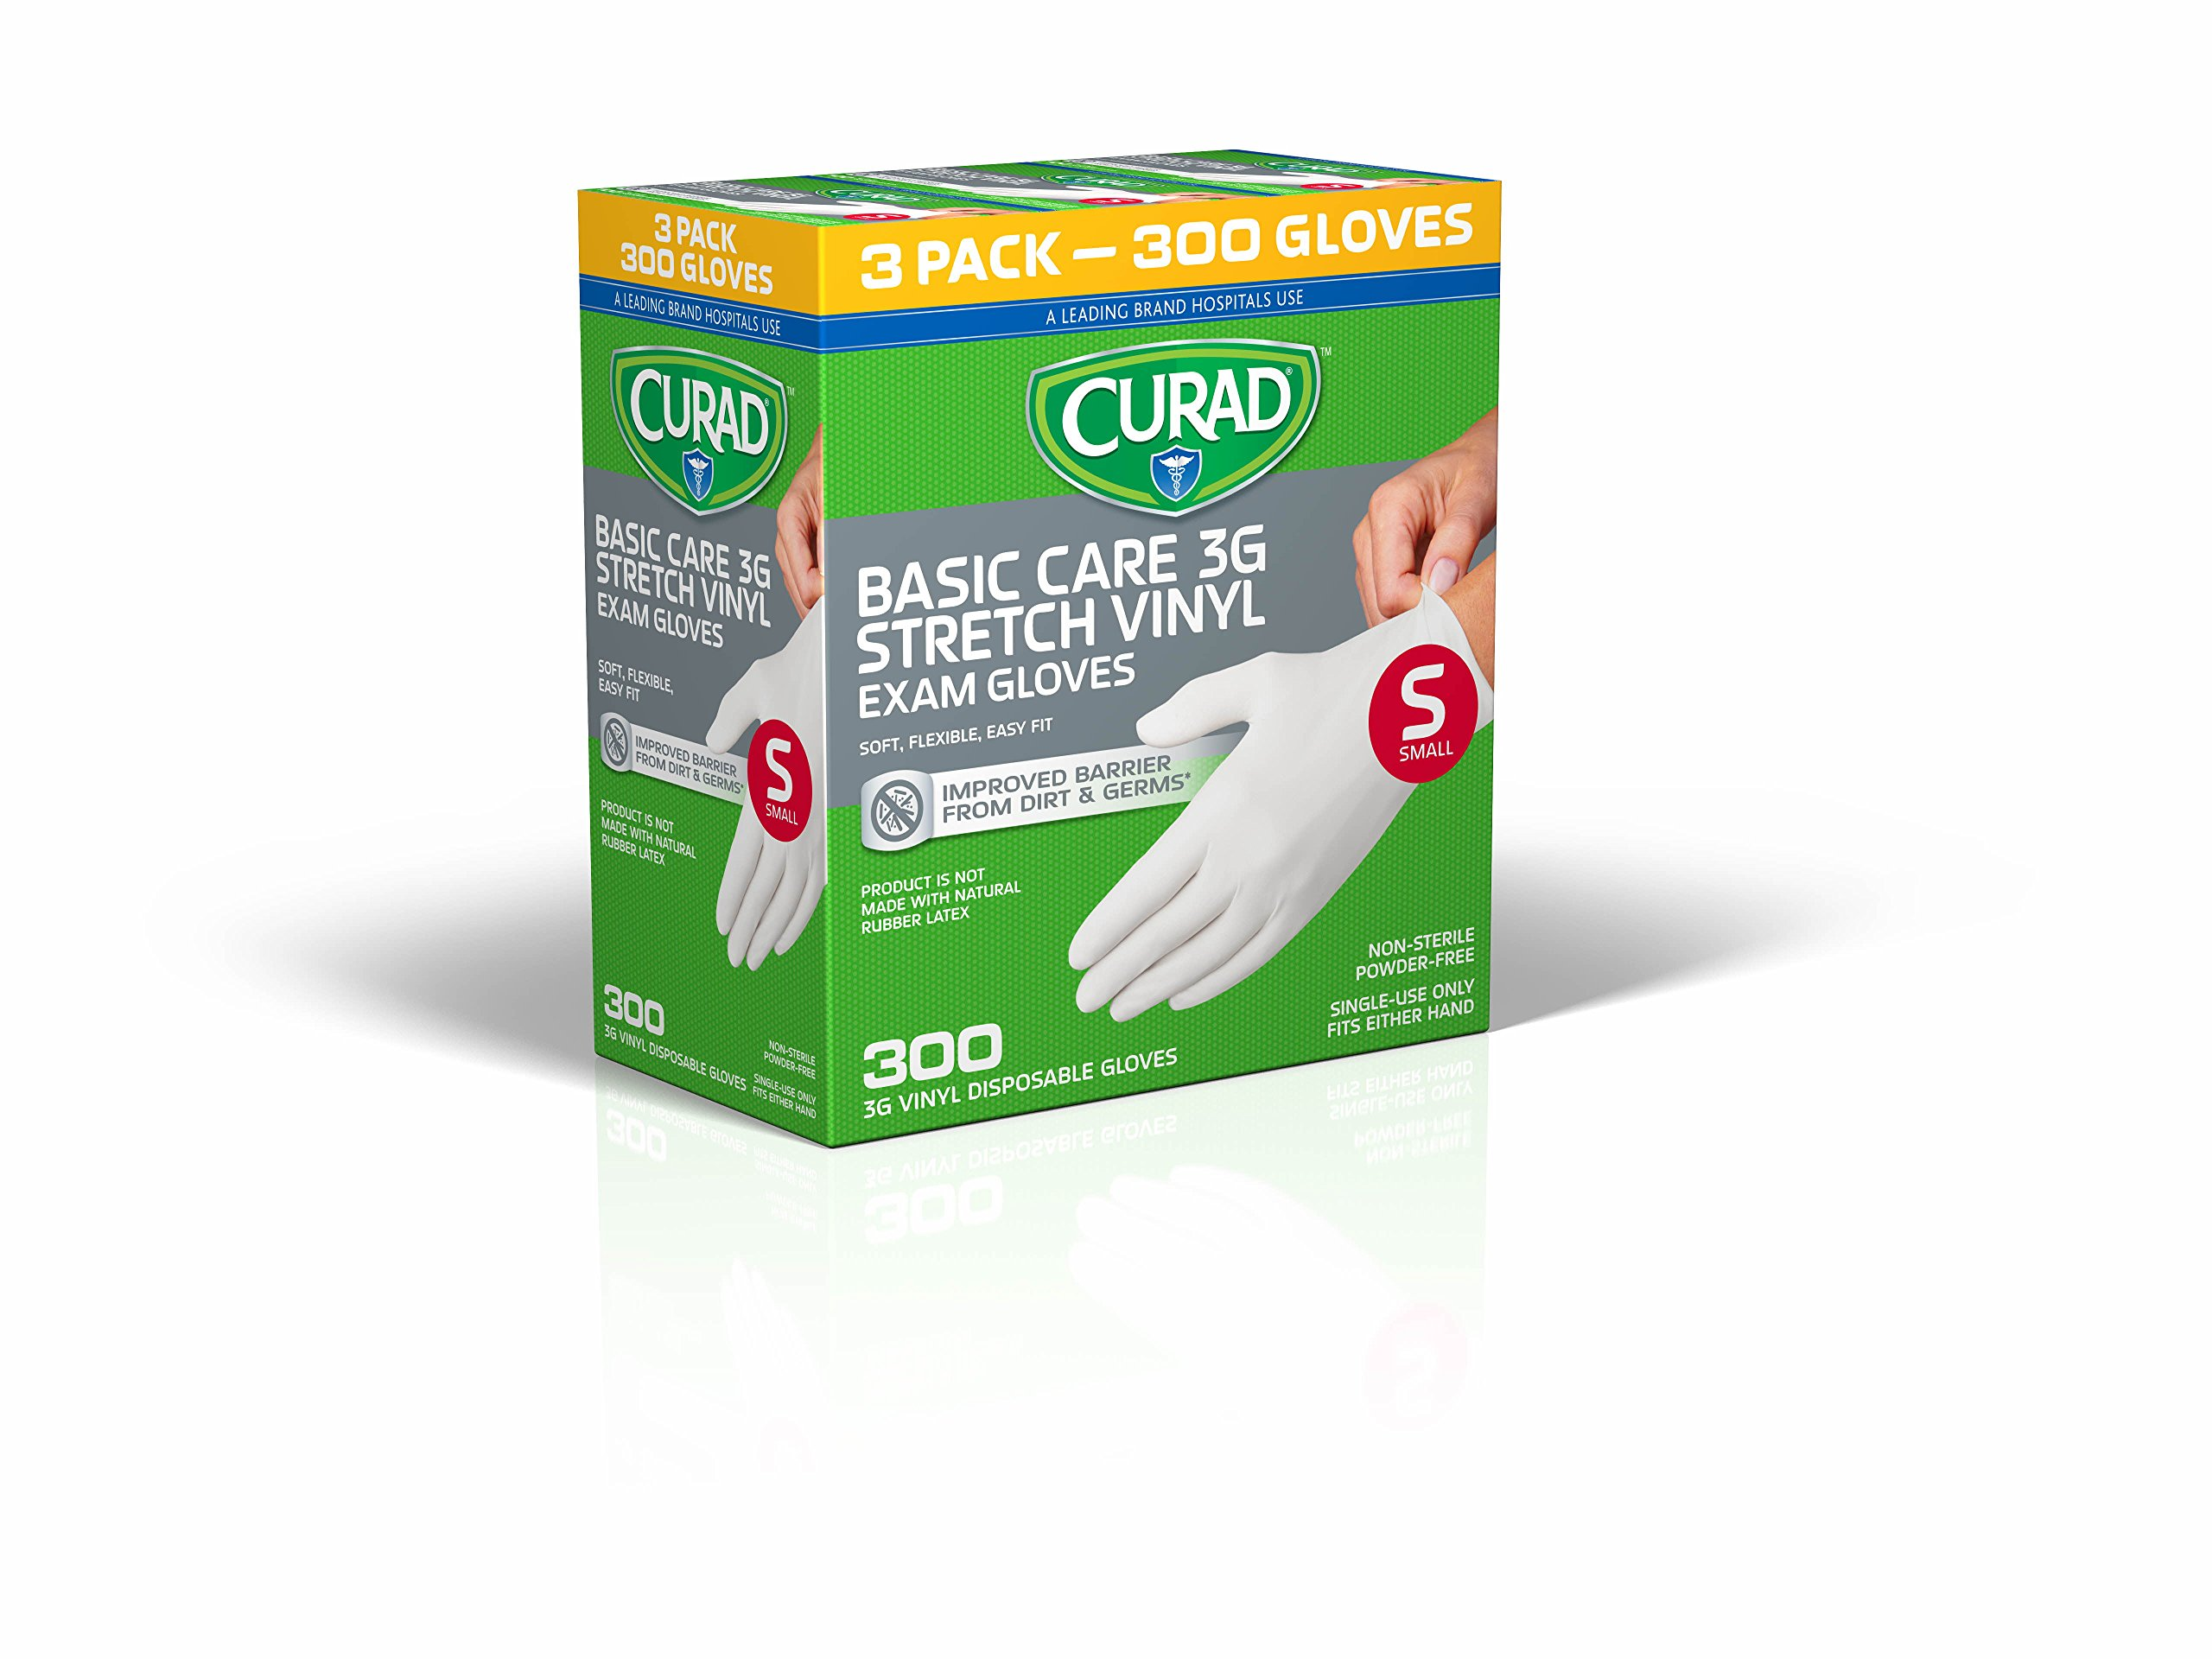 CURAD Disposable 3G Stretch Vinyl Exam Gloves, Small, 100 per Box (300 Count)